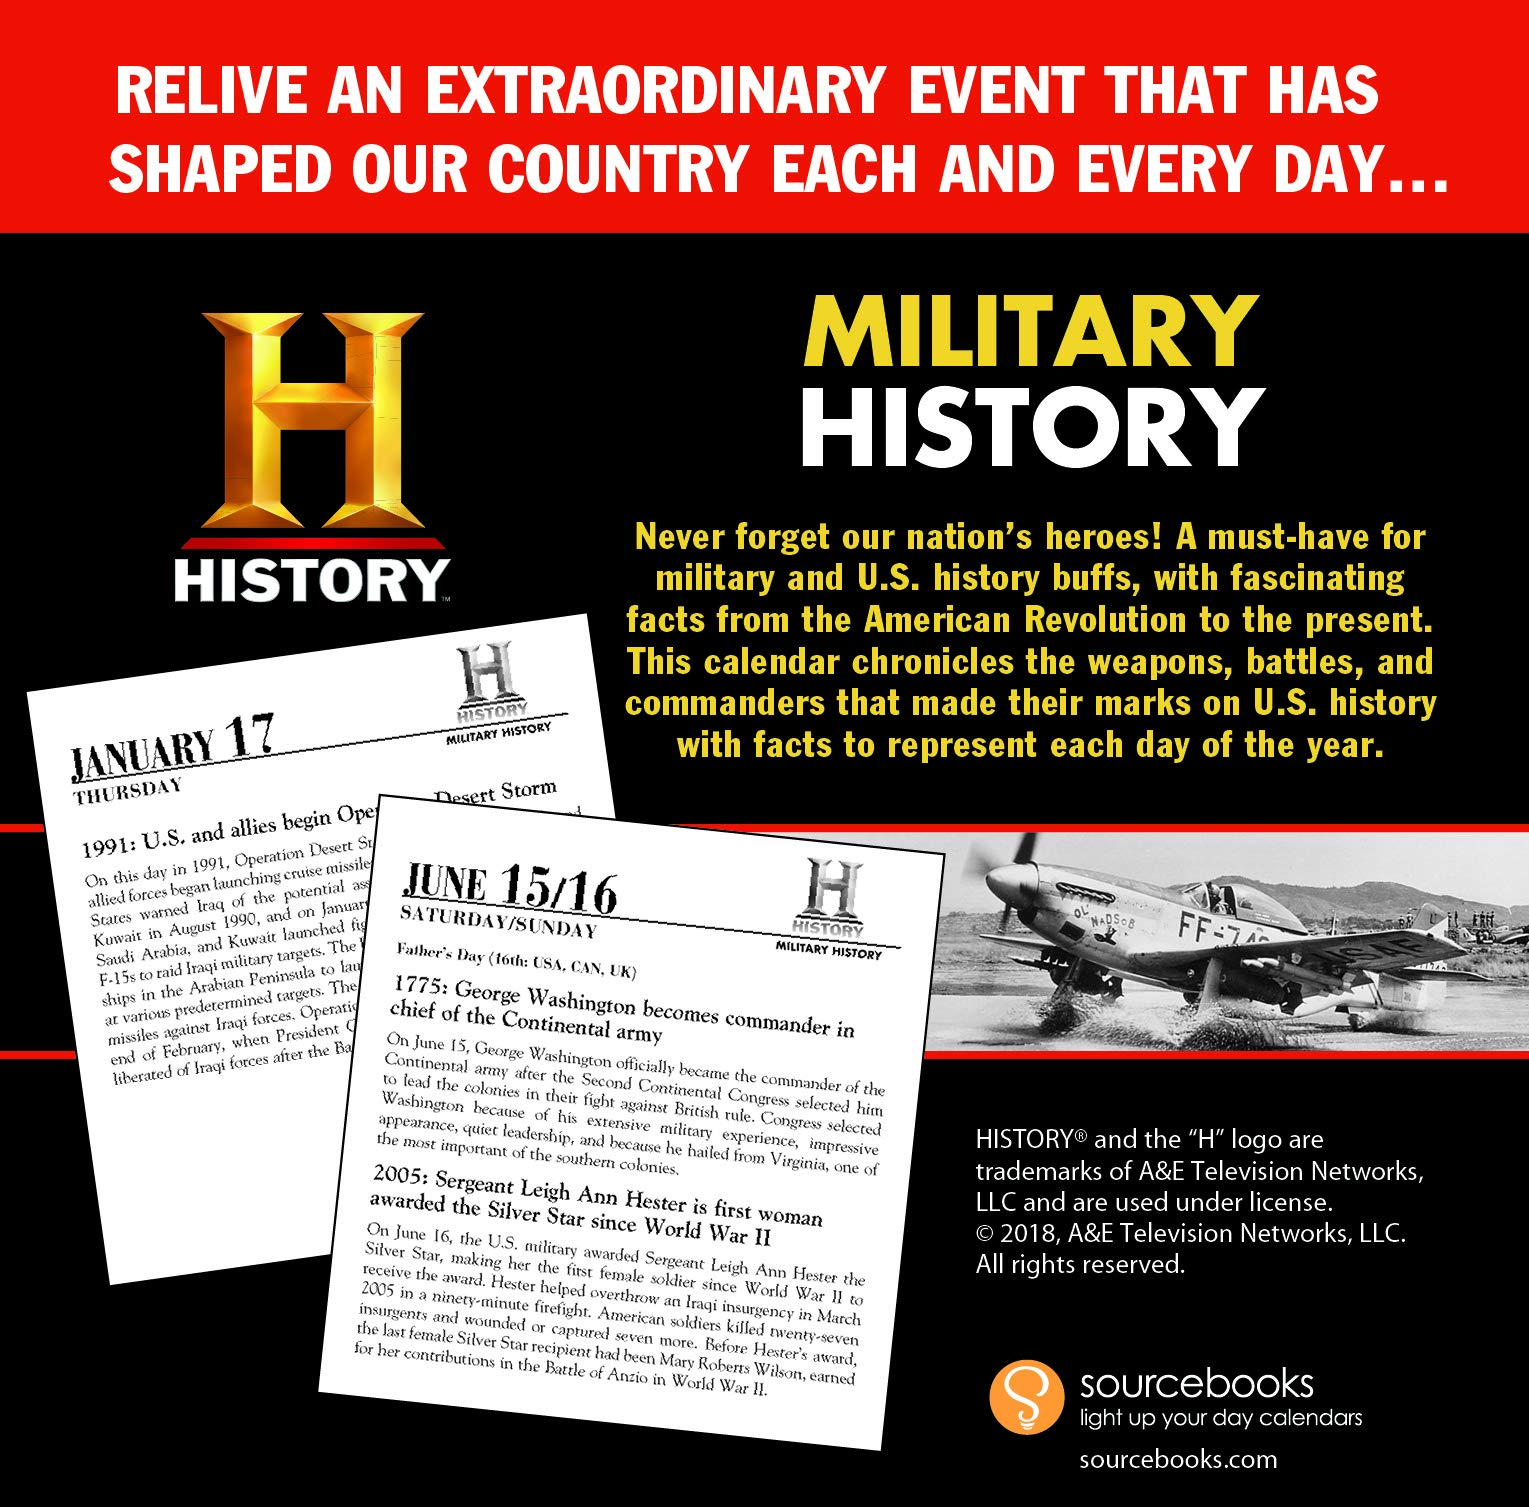 2019 history channel this day in military history boxed calendar 365 days of americas greatest military moments history channel 9781492663690